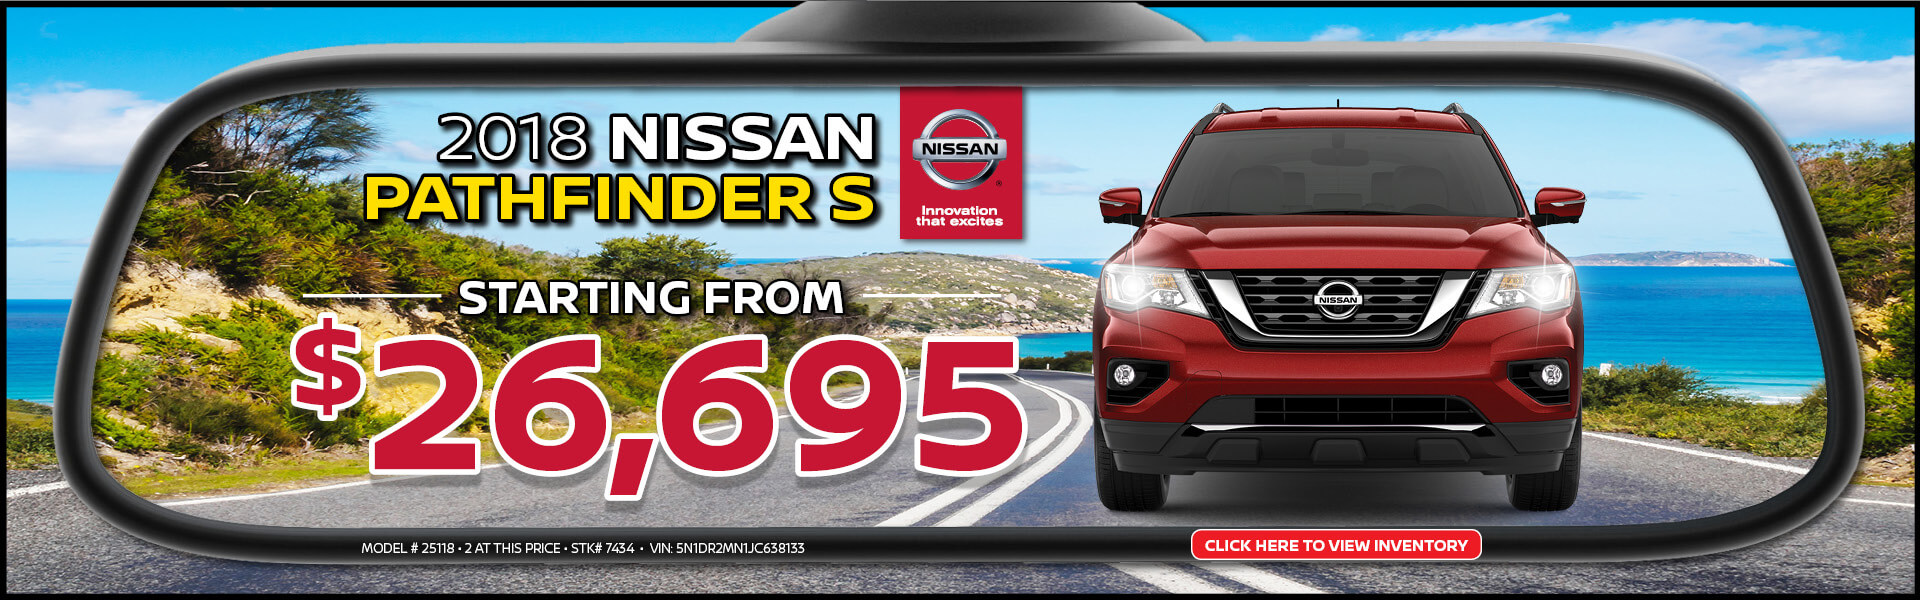 Nissan Pathfinder $26,695 Purchase